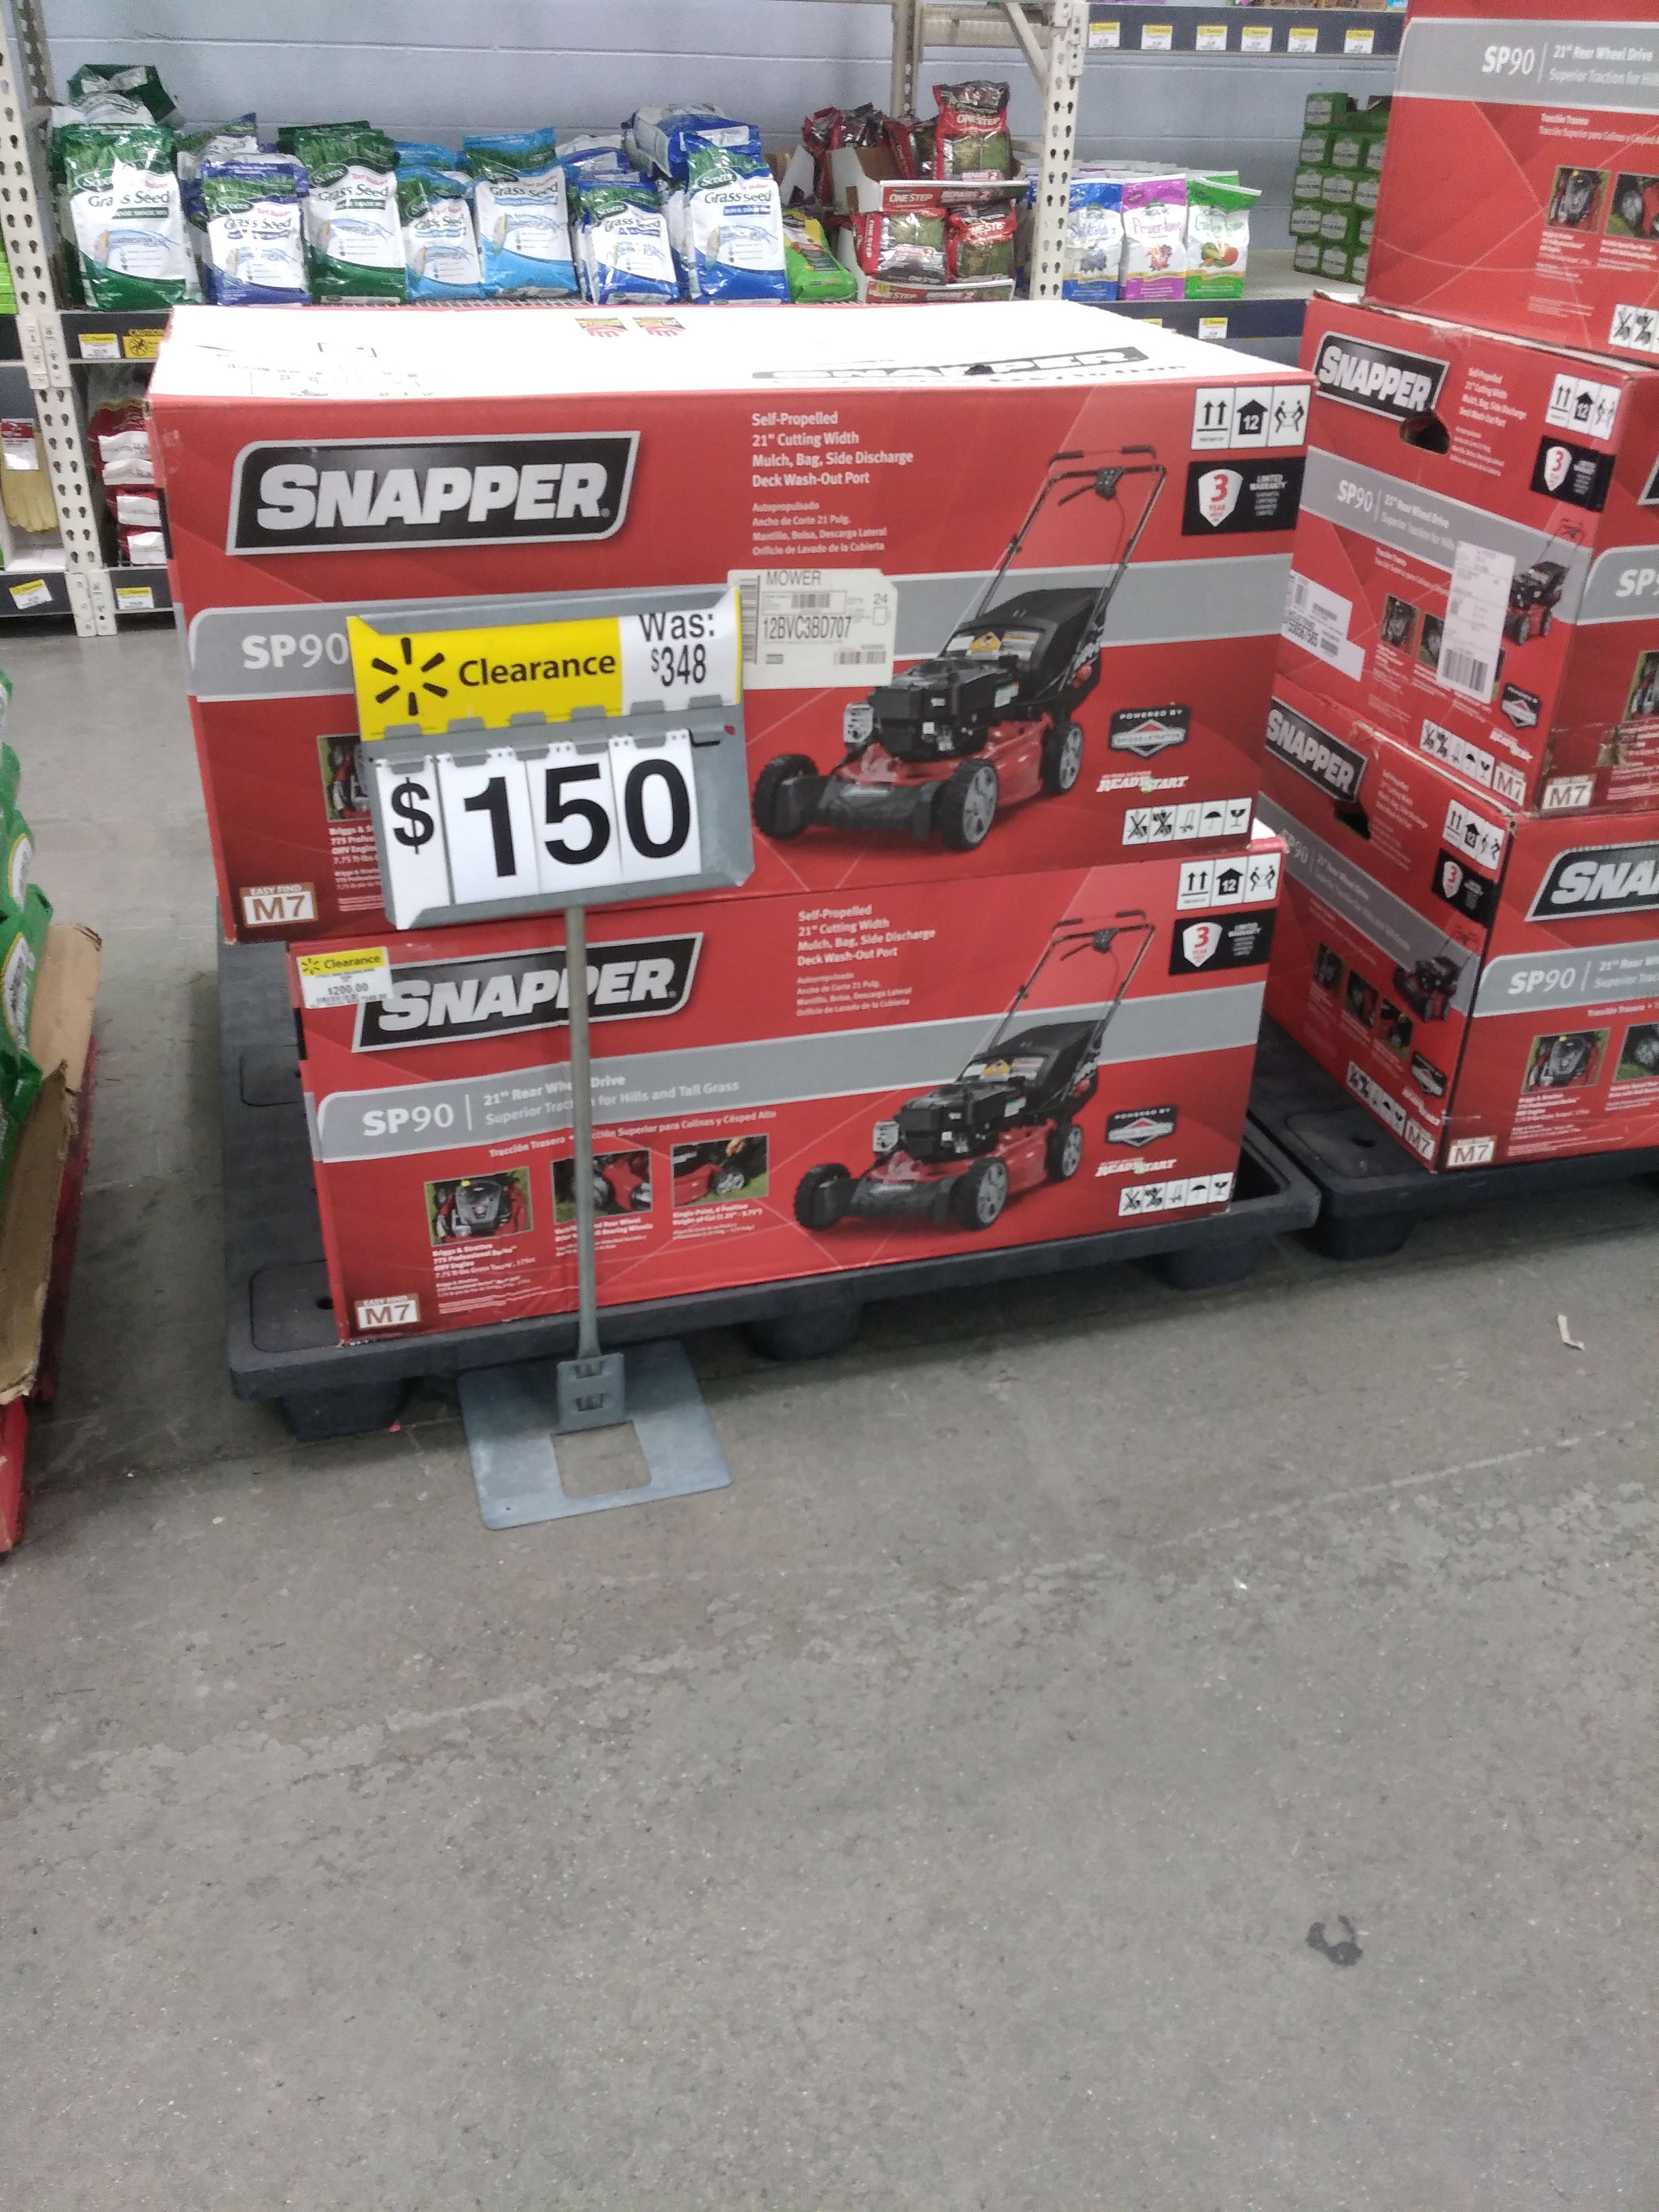 """Snapper SP90 self propelled 21"""" mower with deck wash $150 Clearance"""